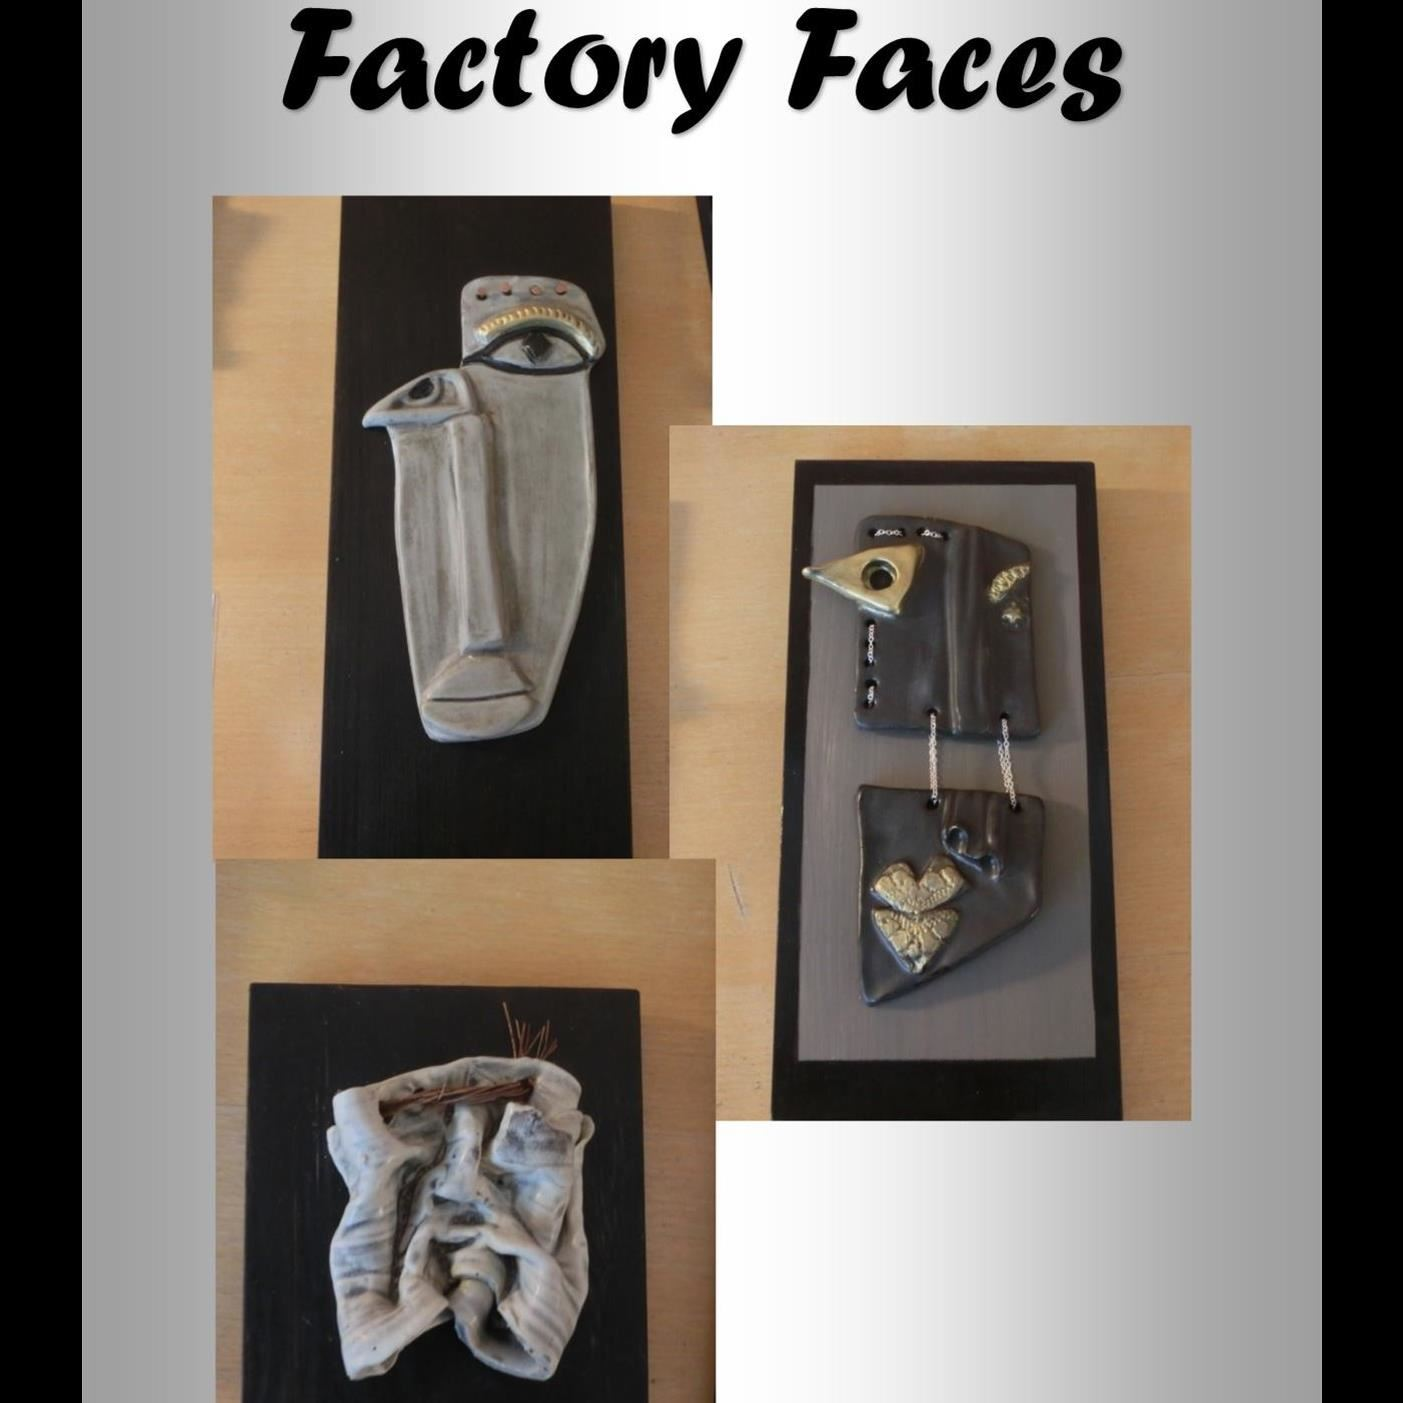 Factory faces